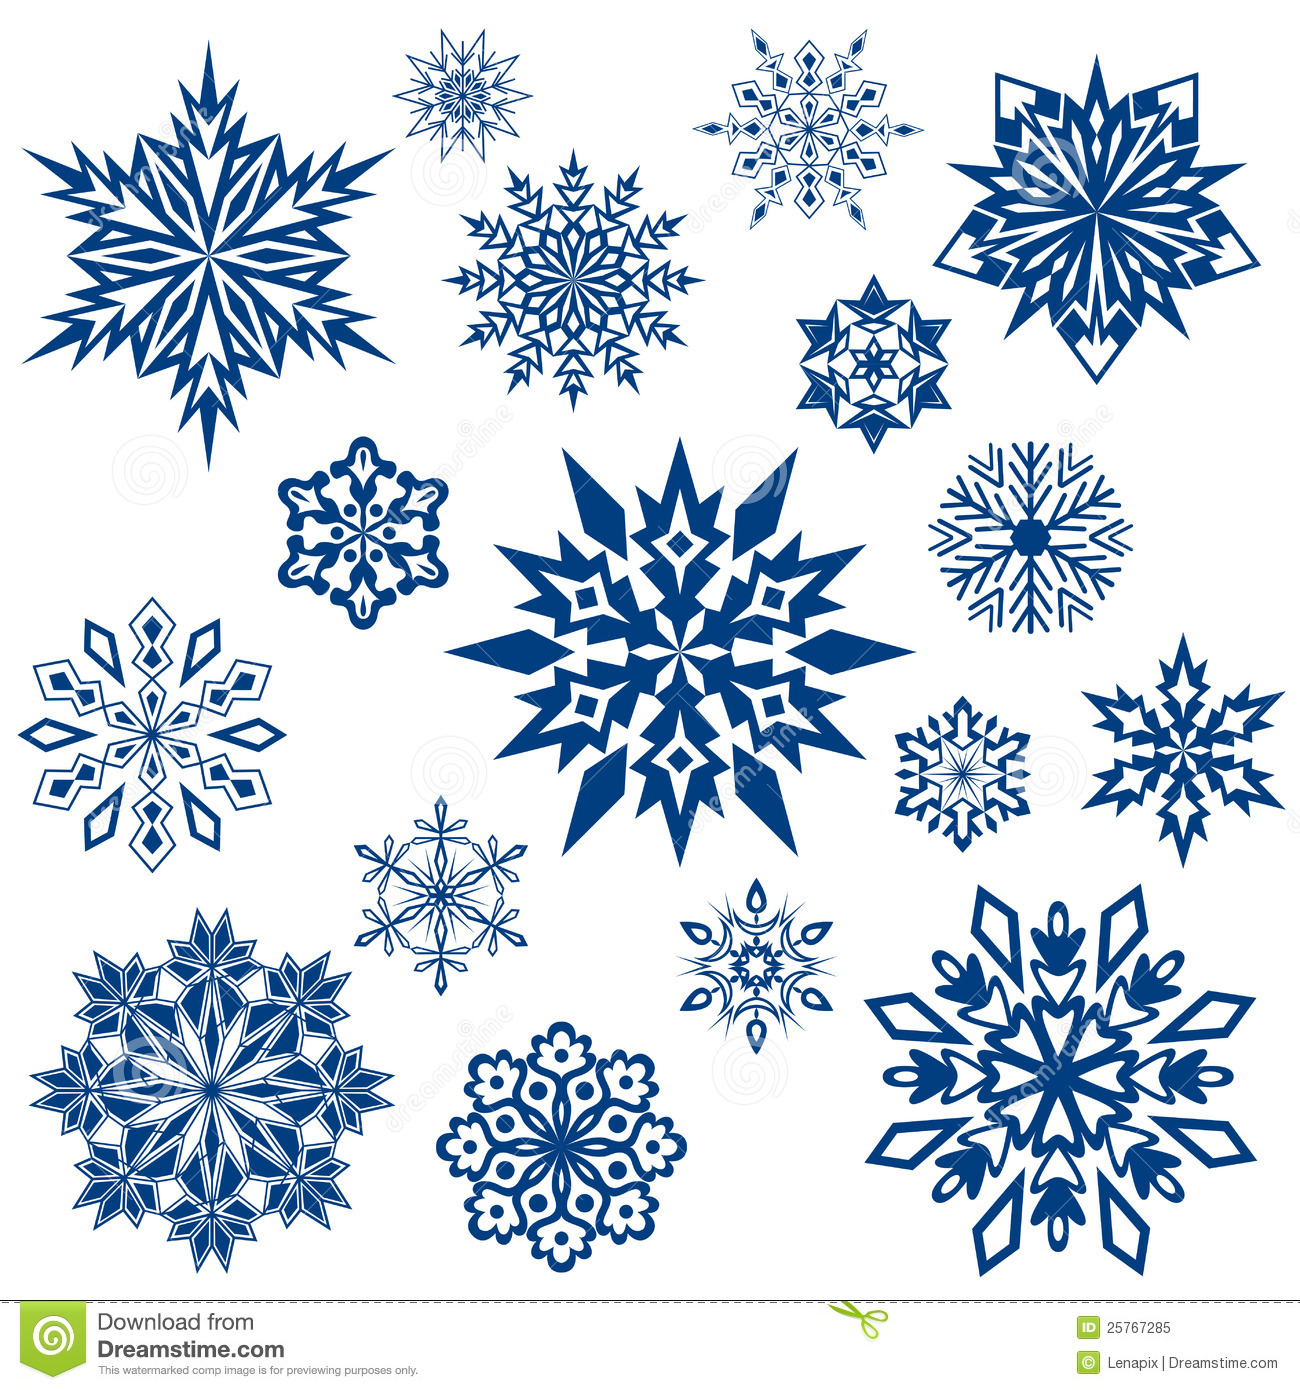 snowflake shapes collection royalty free stock photo